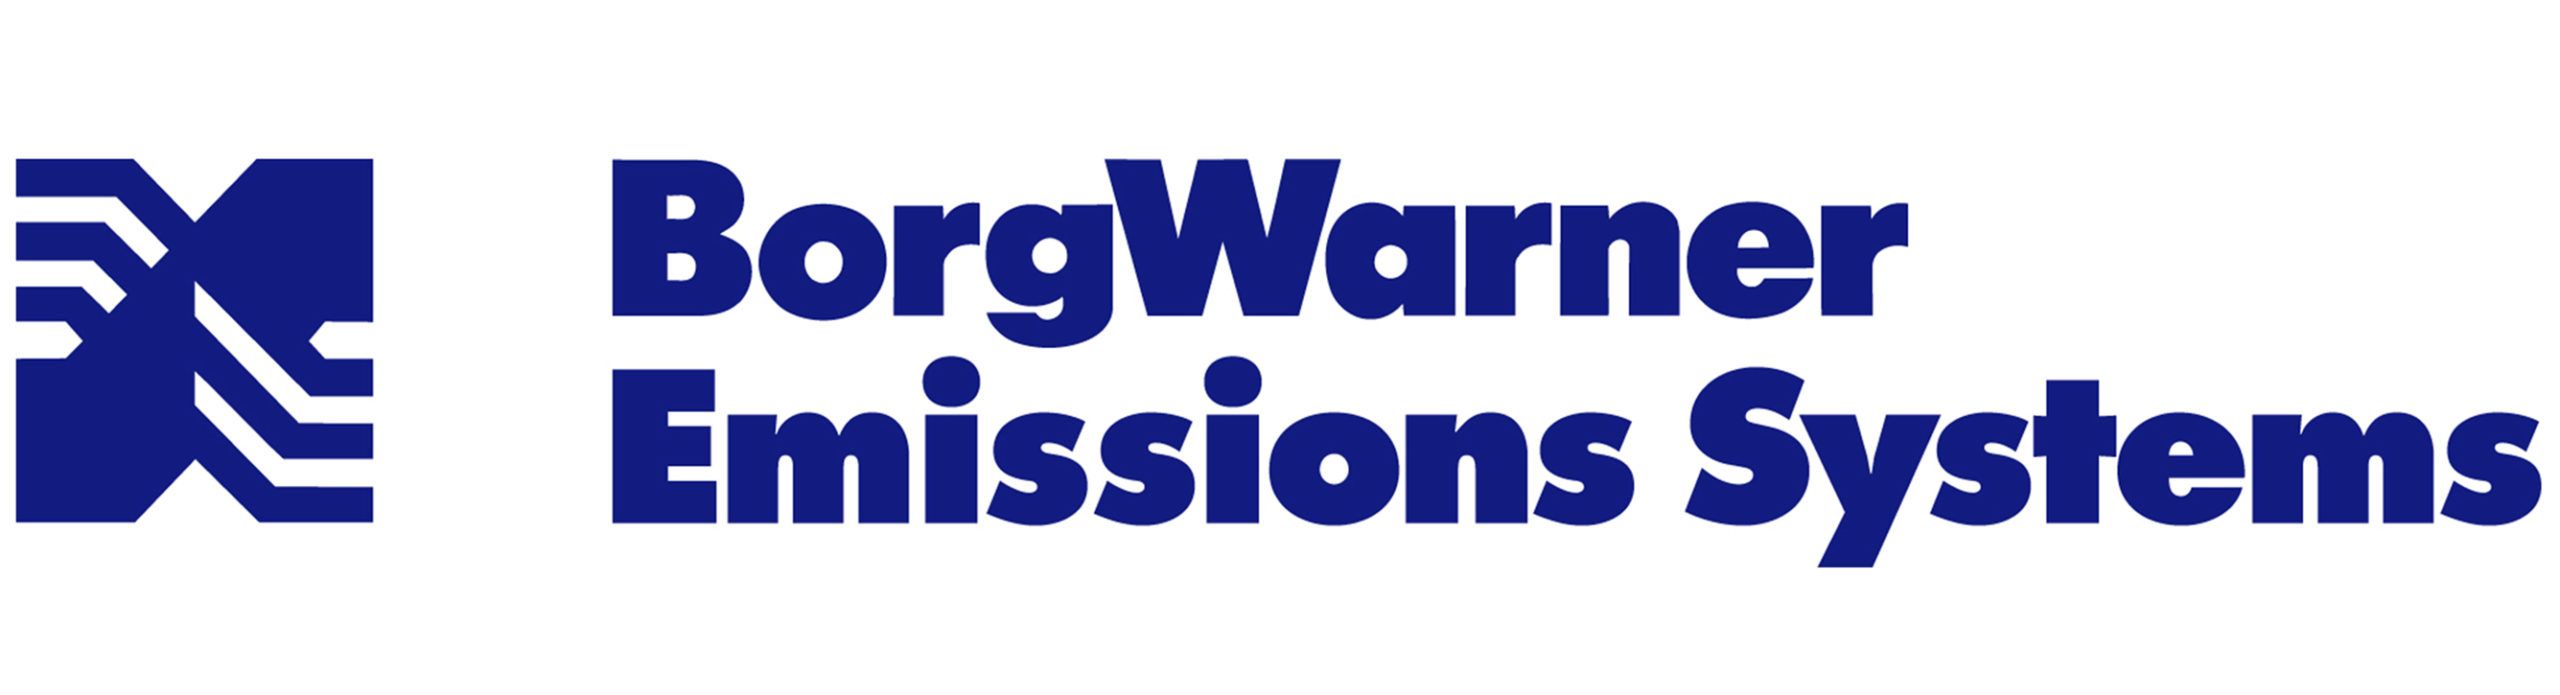 Borgwarner Emissions Systems Spain, S.L.